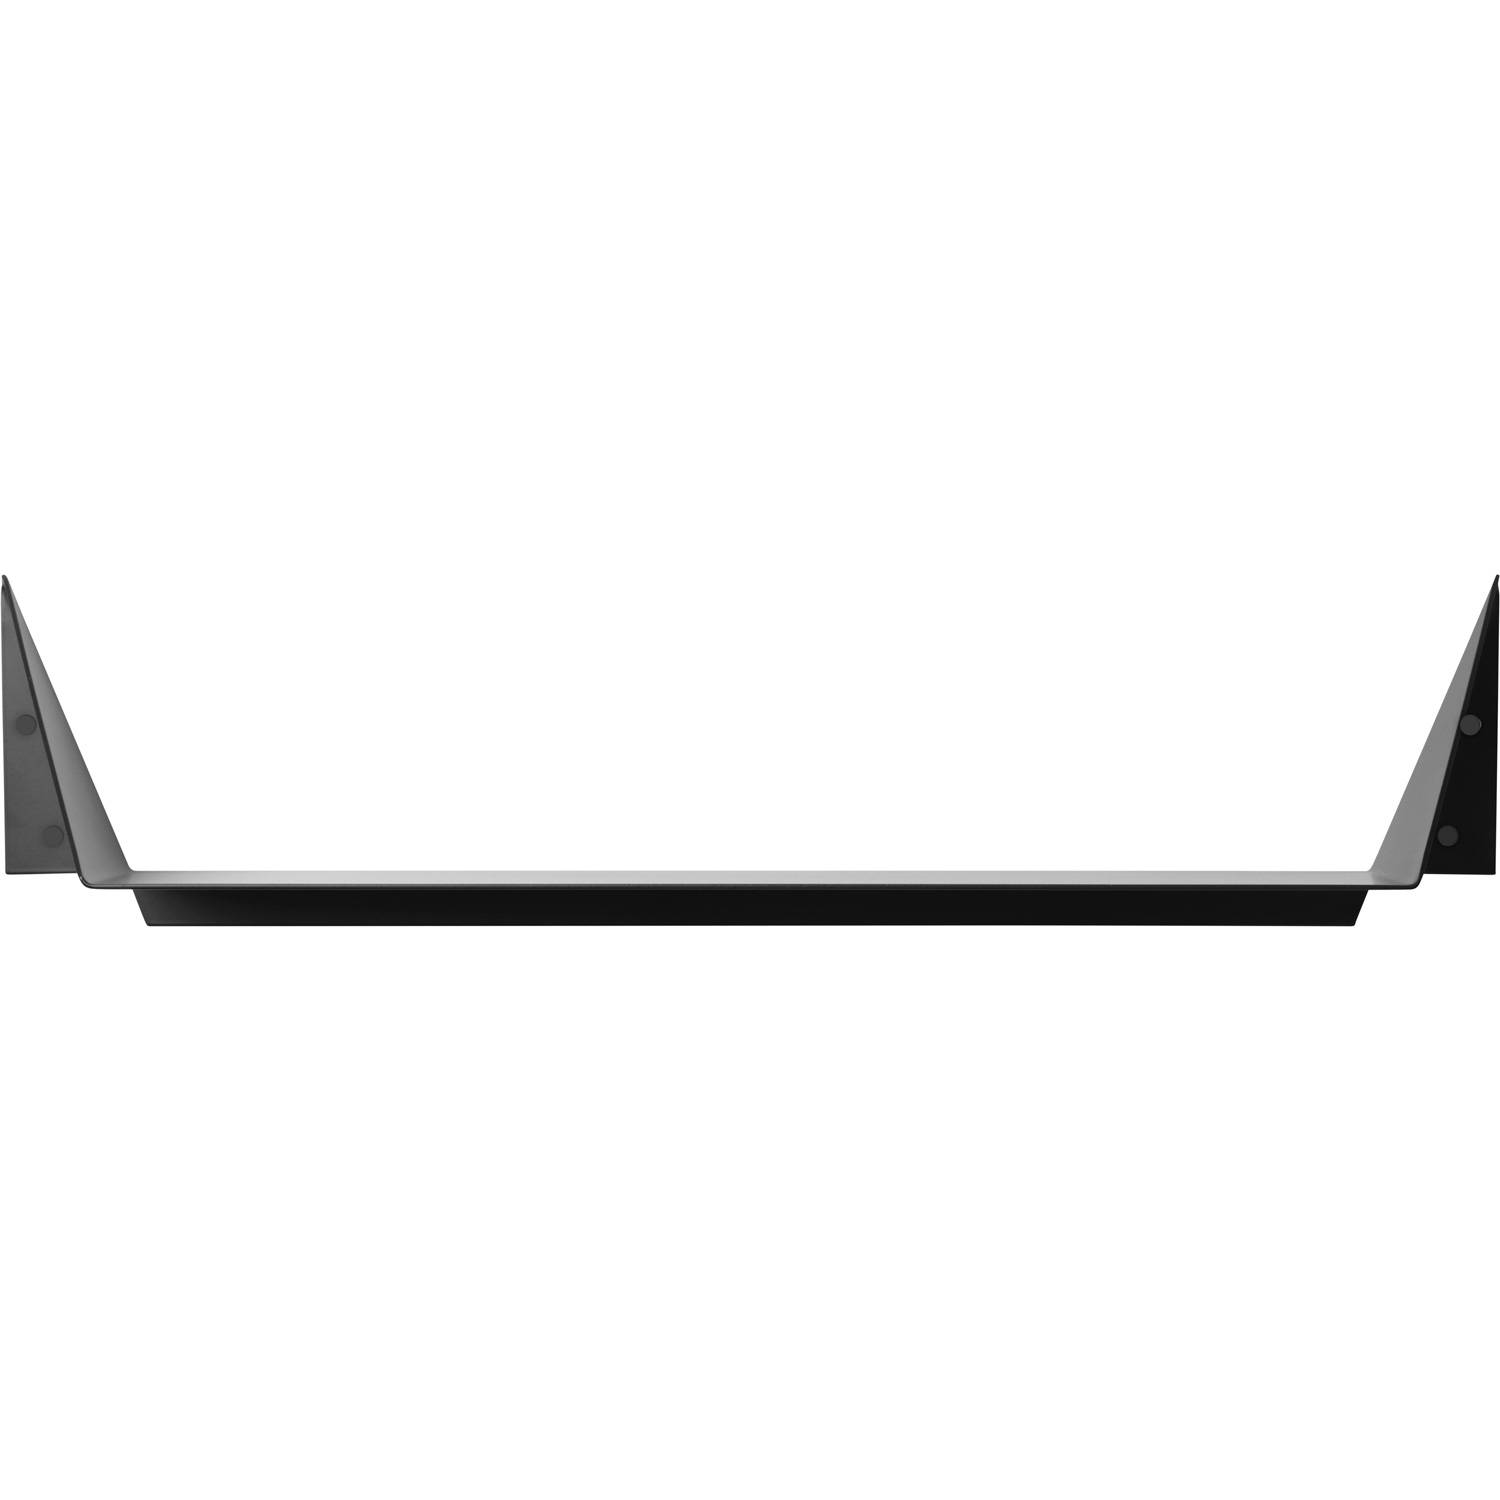 Ferm Living-Gami Shelf Large 60 cm, Black